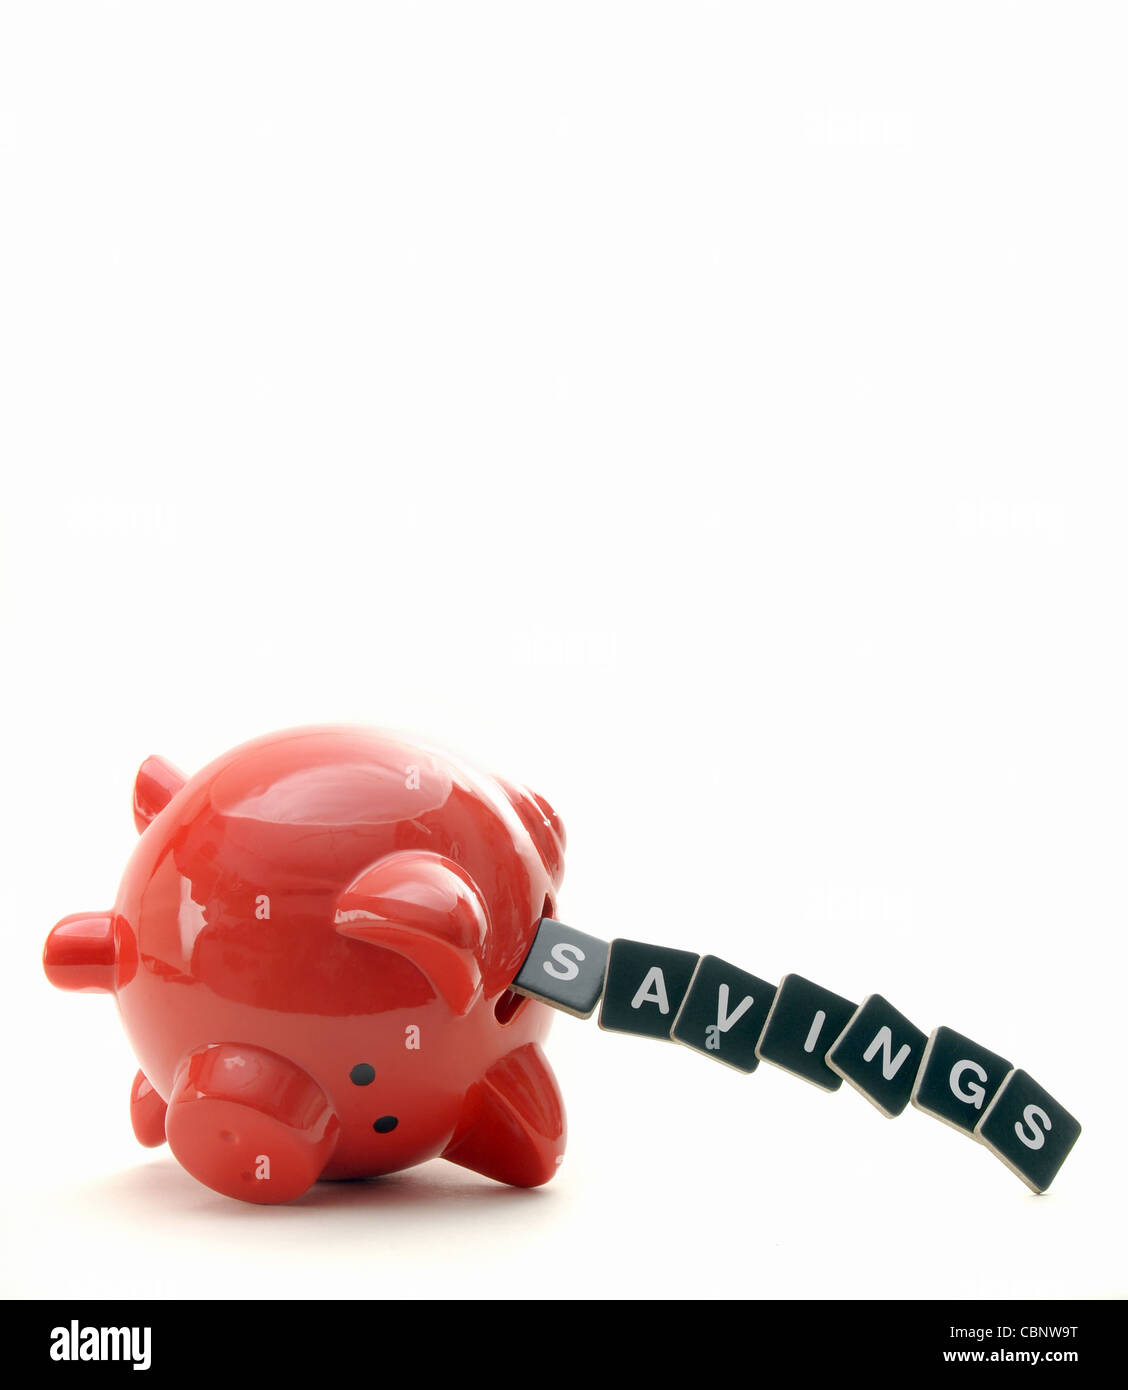 OVERTURNED RED PIGGYBANK WITH LETTERS SPELLING SAVINGS   RE CASH      THE ECONOMY CREDIT CRUNCH SAVINGS LOANS DEBT - Stock Image